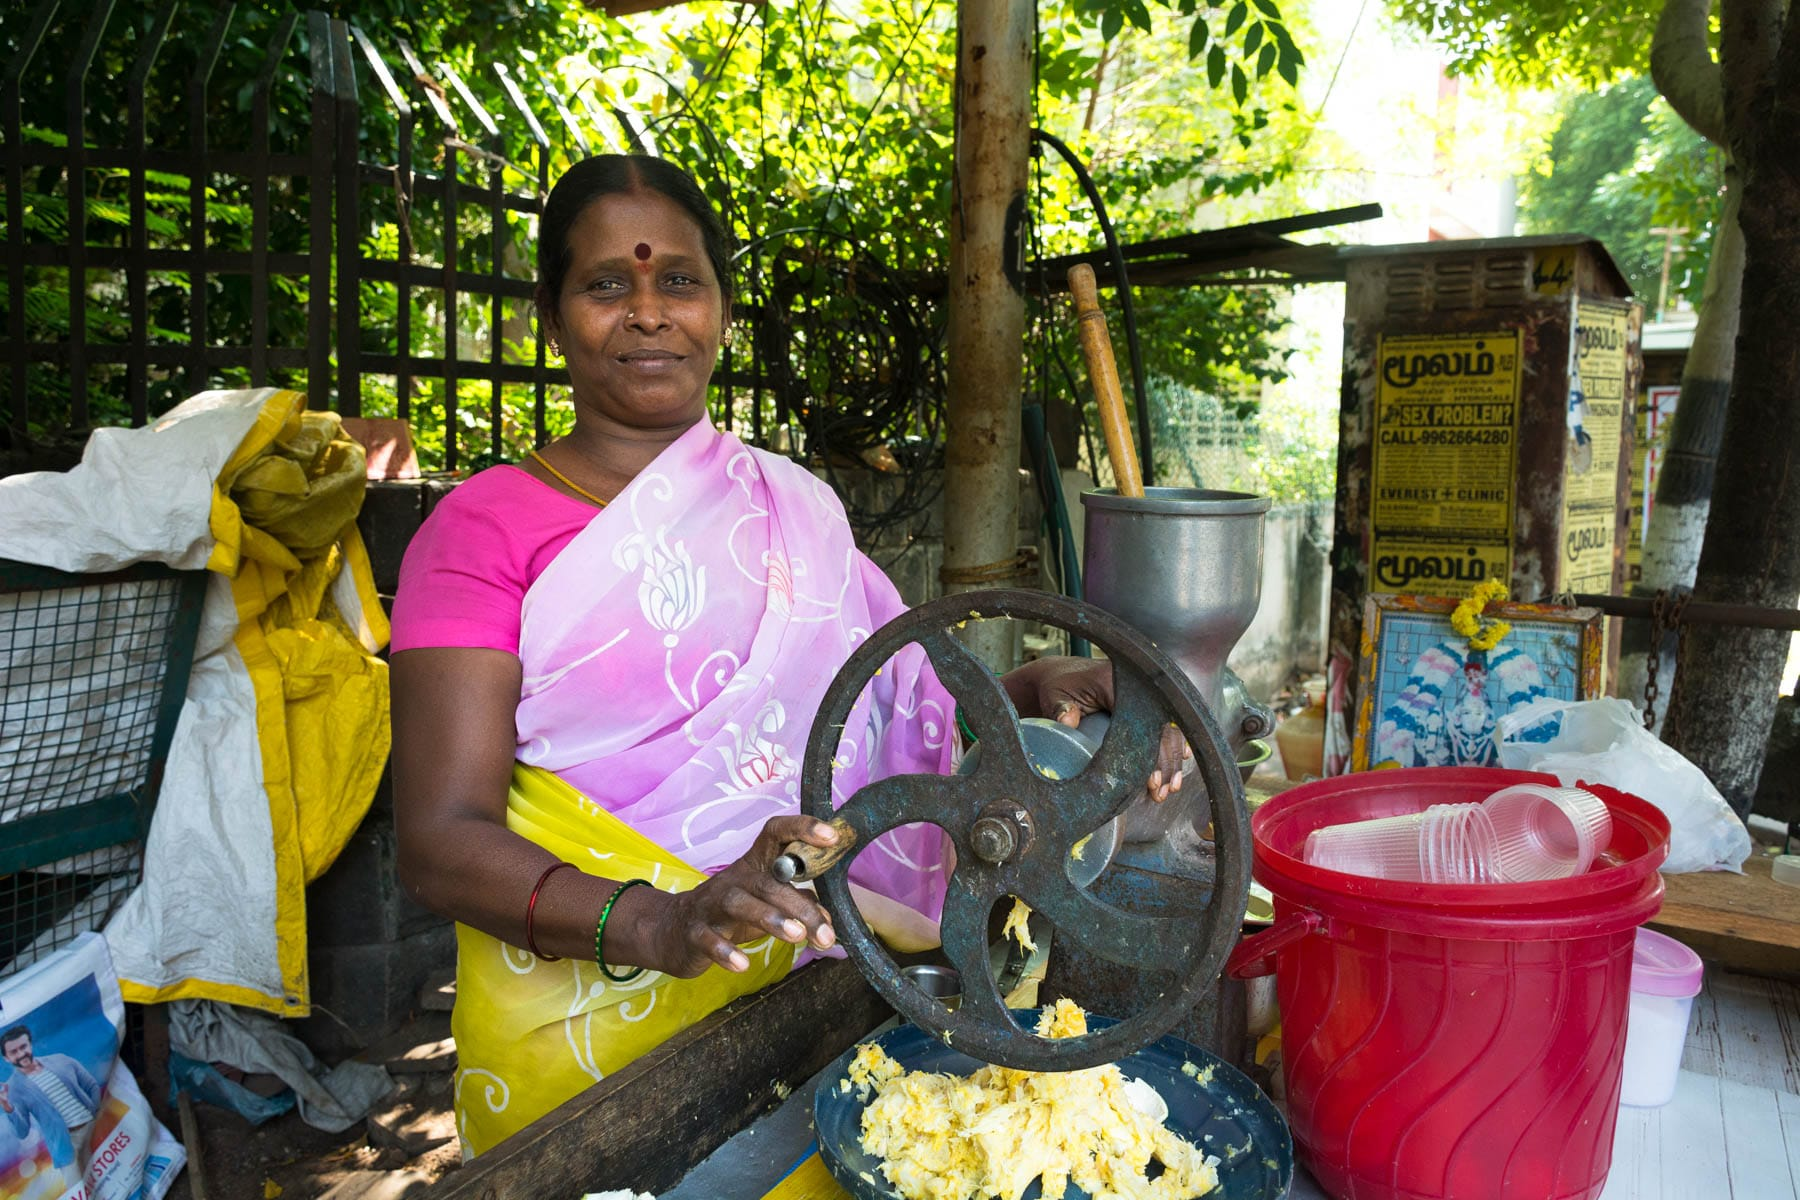 Why dual pricing is unfair - A juice seller in Chennai, India - Lost With Purpose